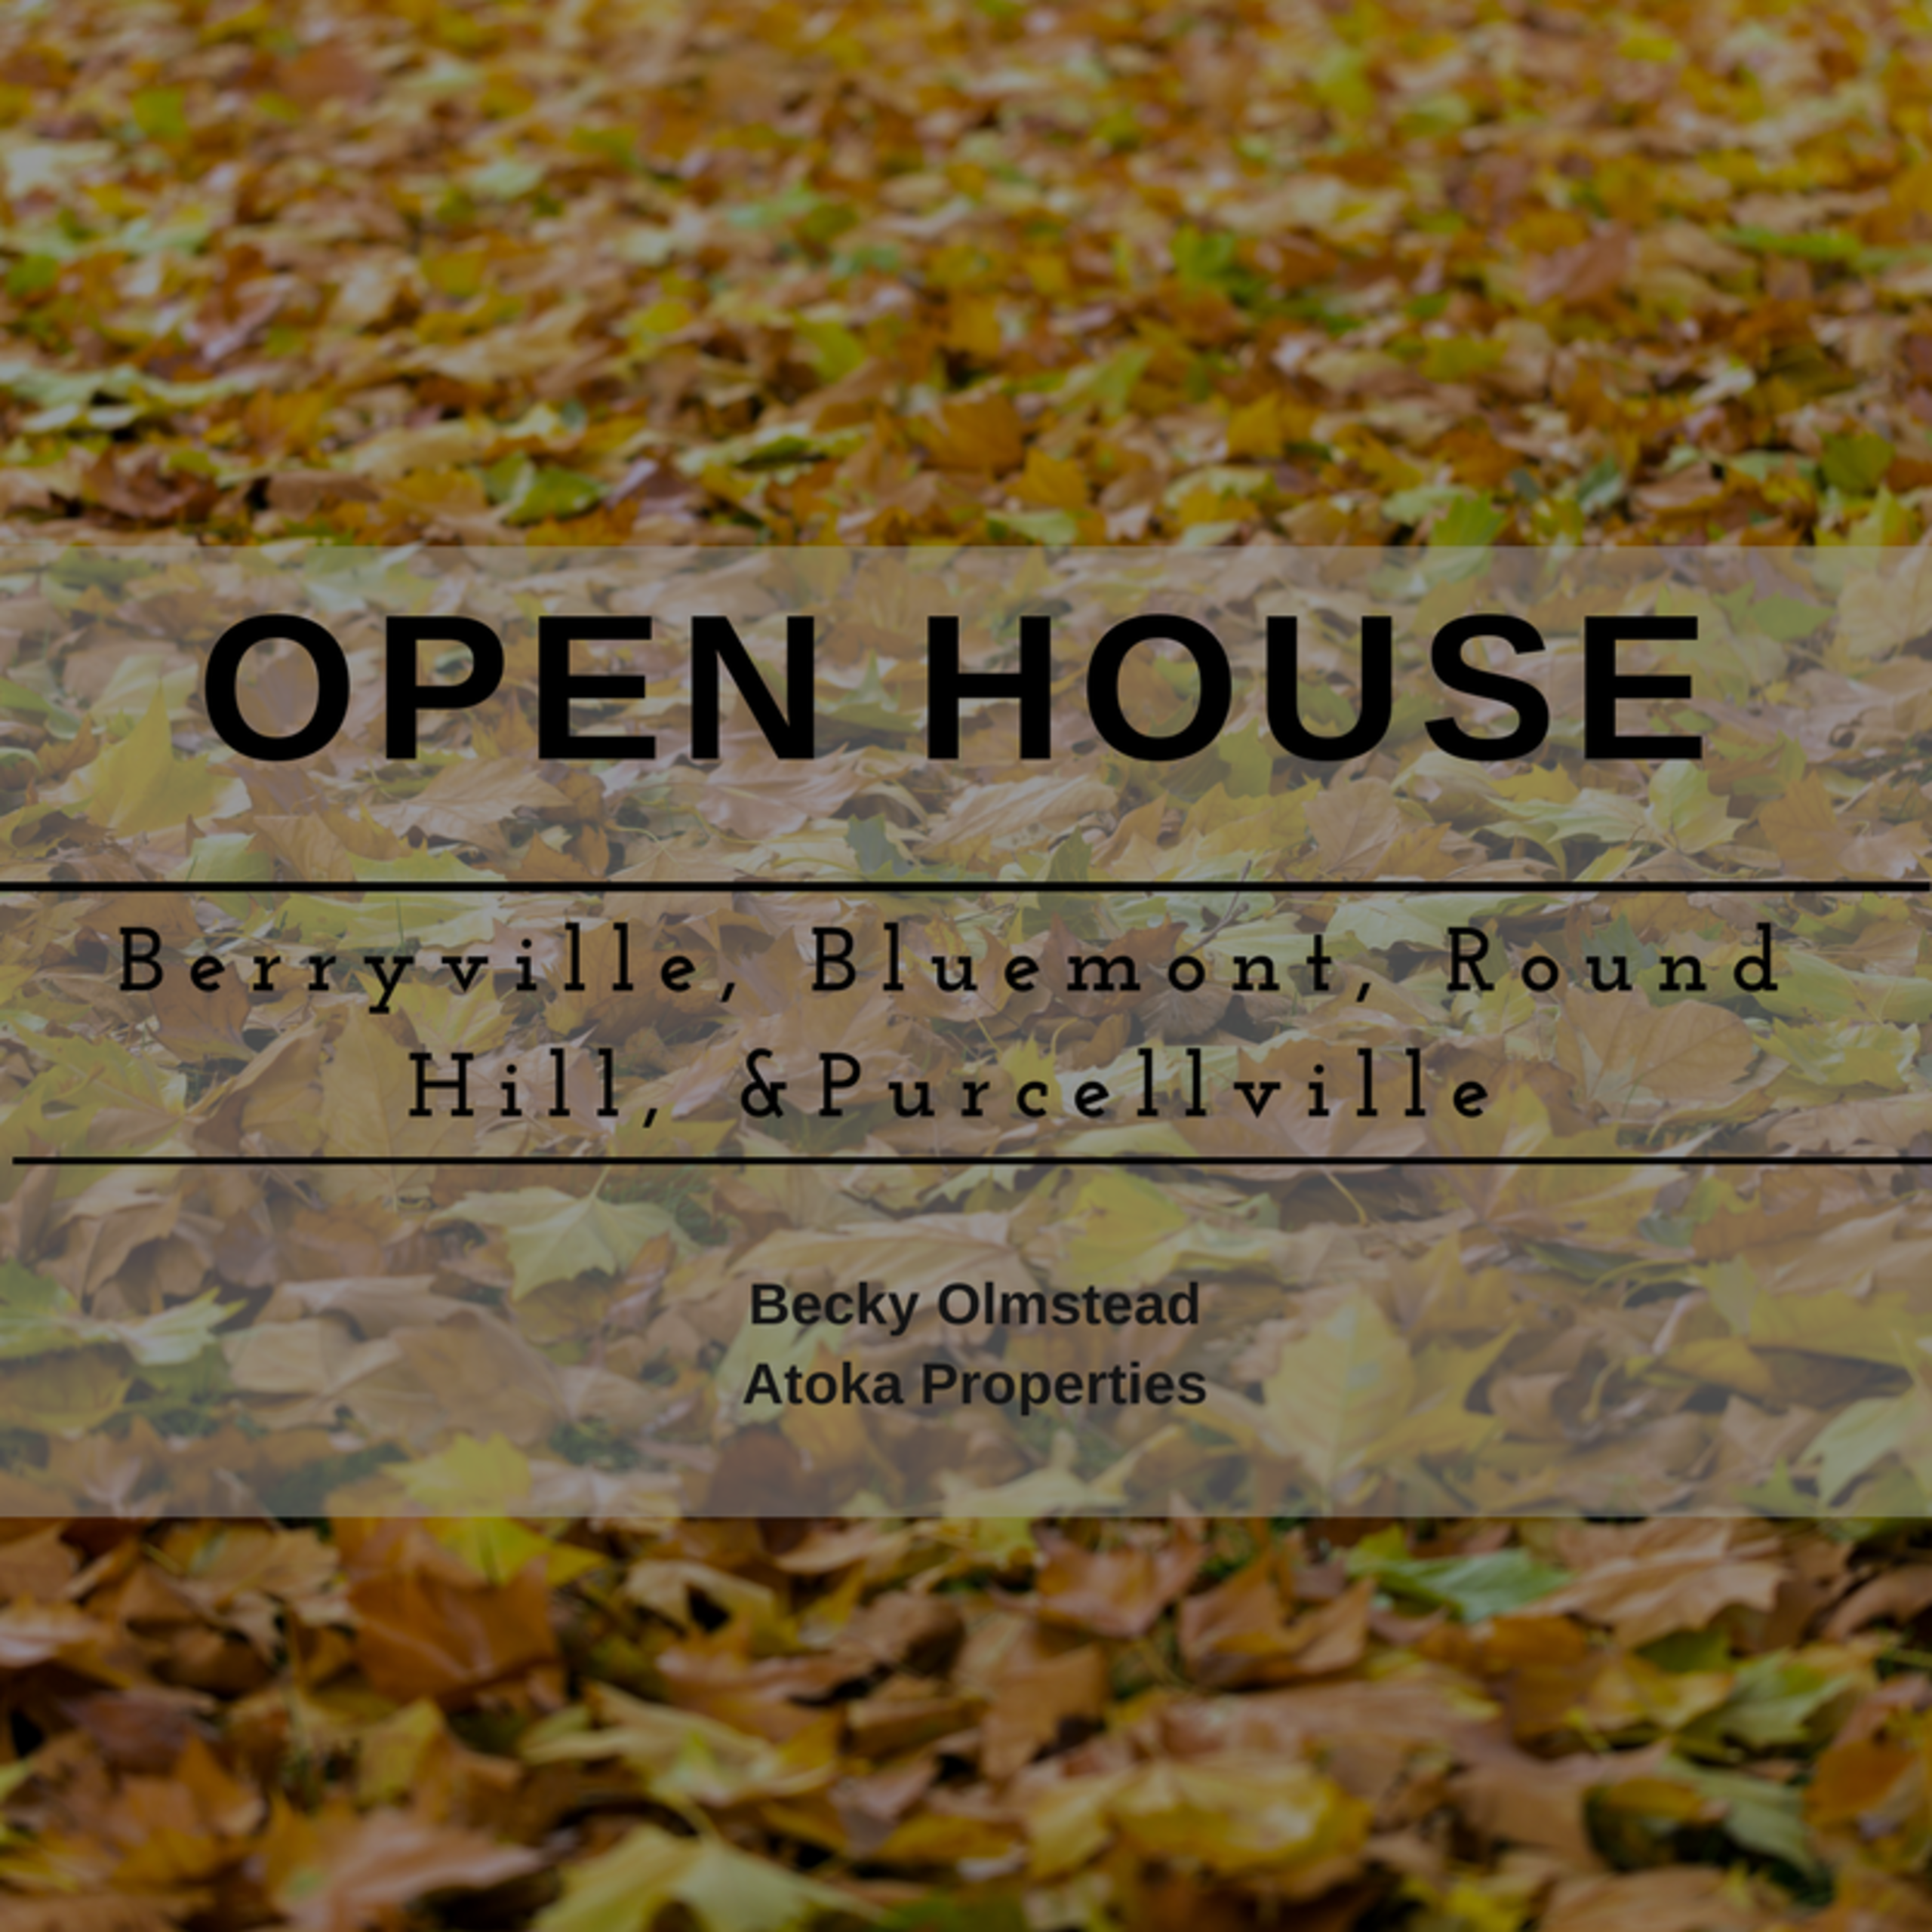 November 18 and 19 Open House